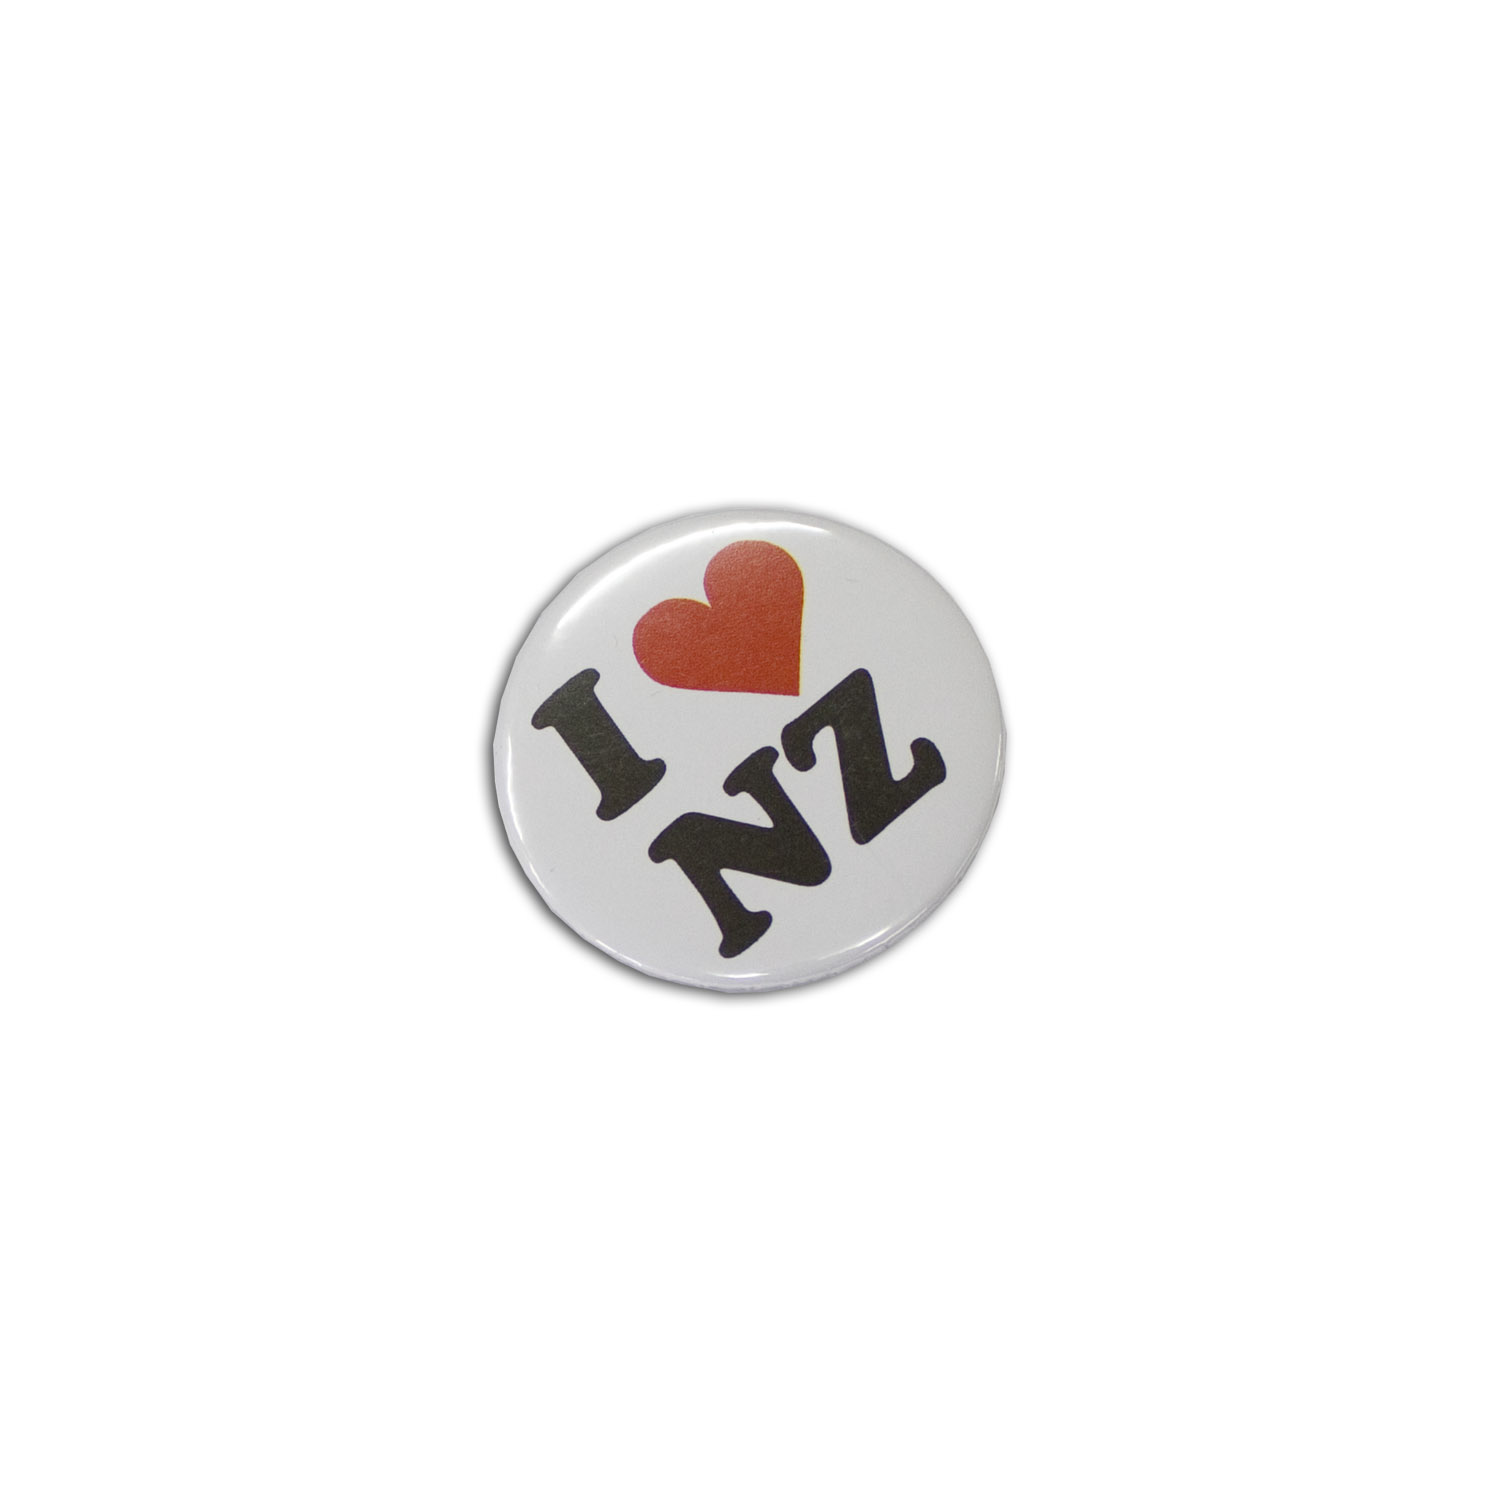 105803-0-Button Badge Round - 37mm